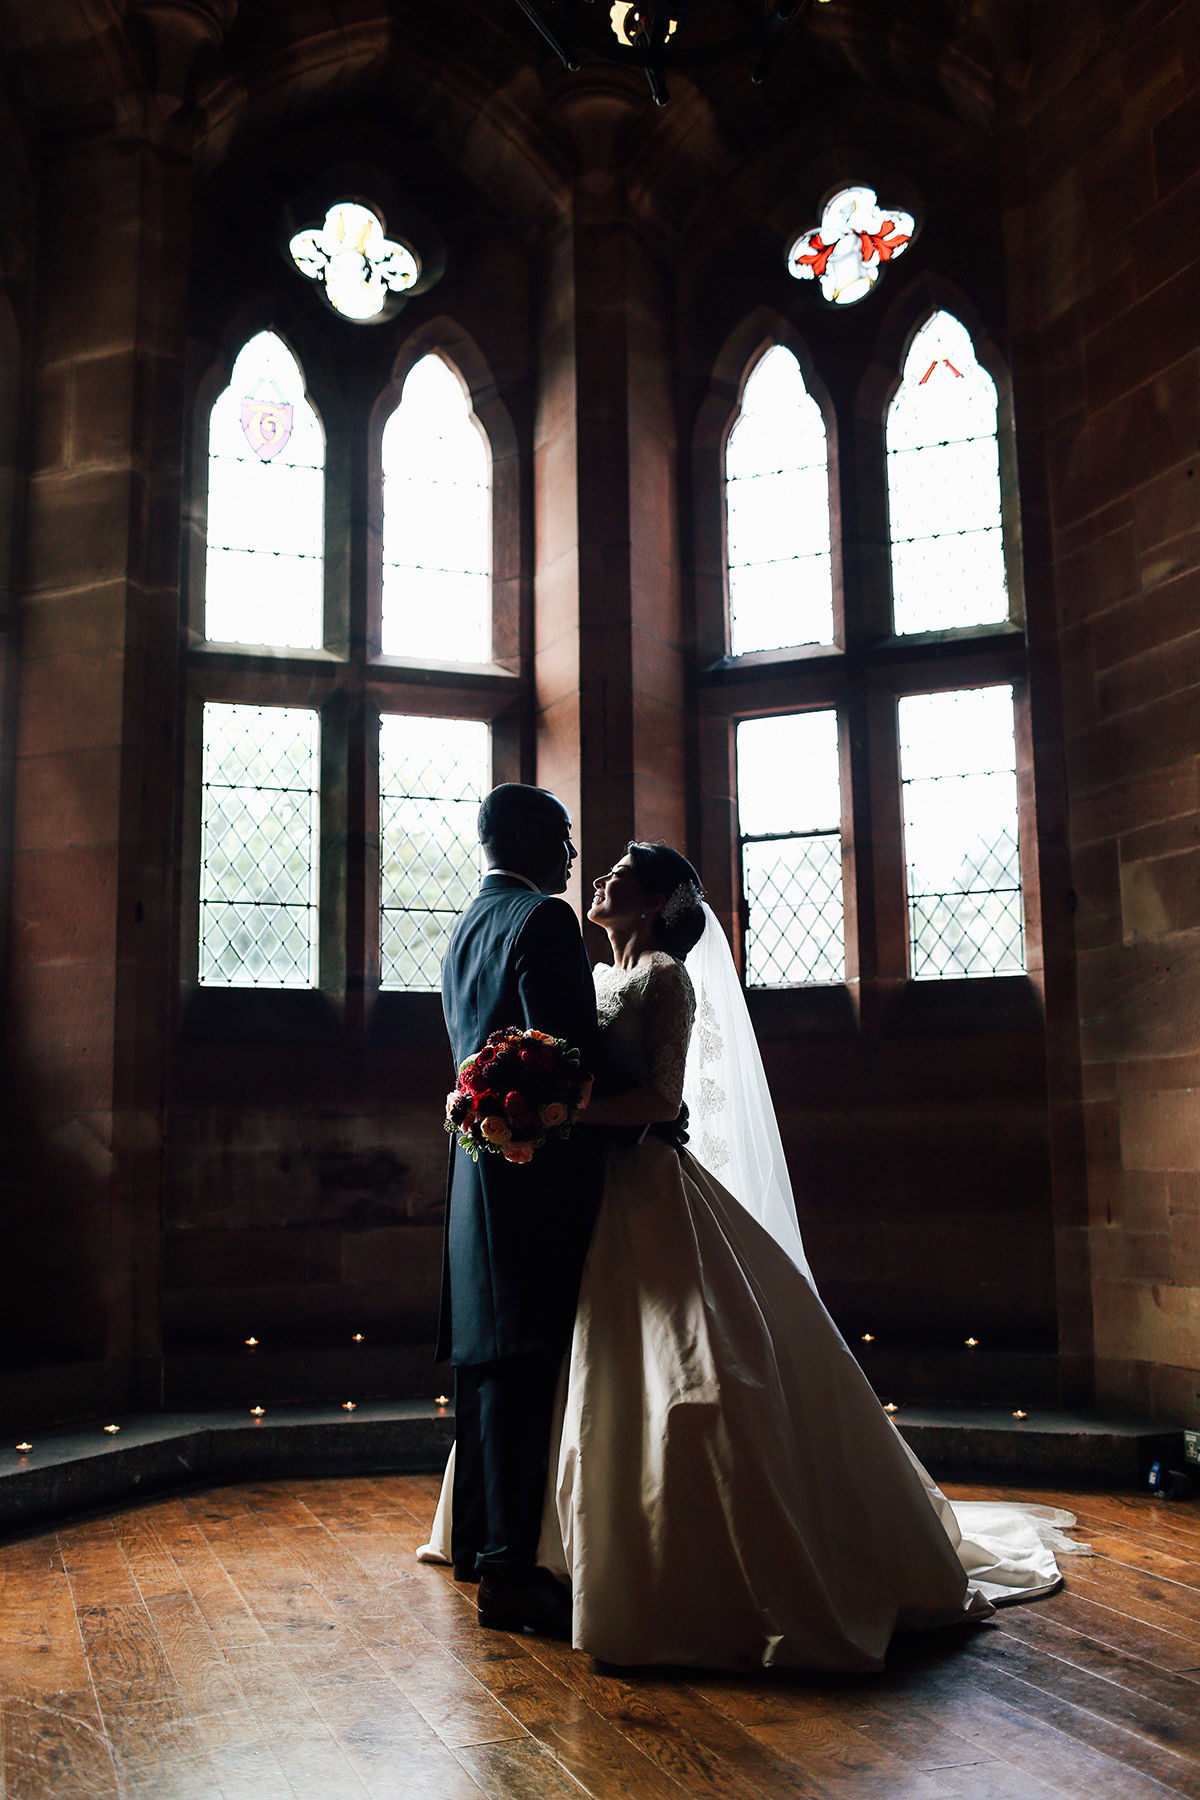 Artistic Wedding Photography Peckforton Castle Cheshire and Manchester Wedding Photographer